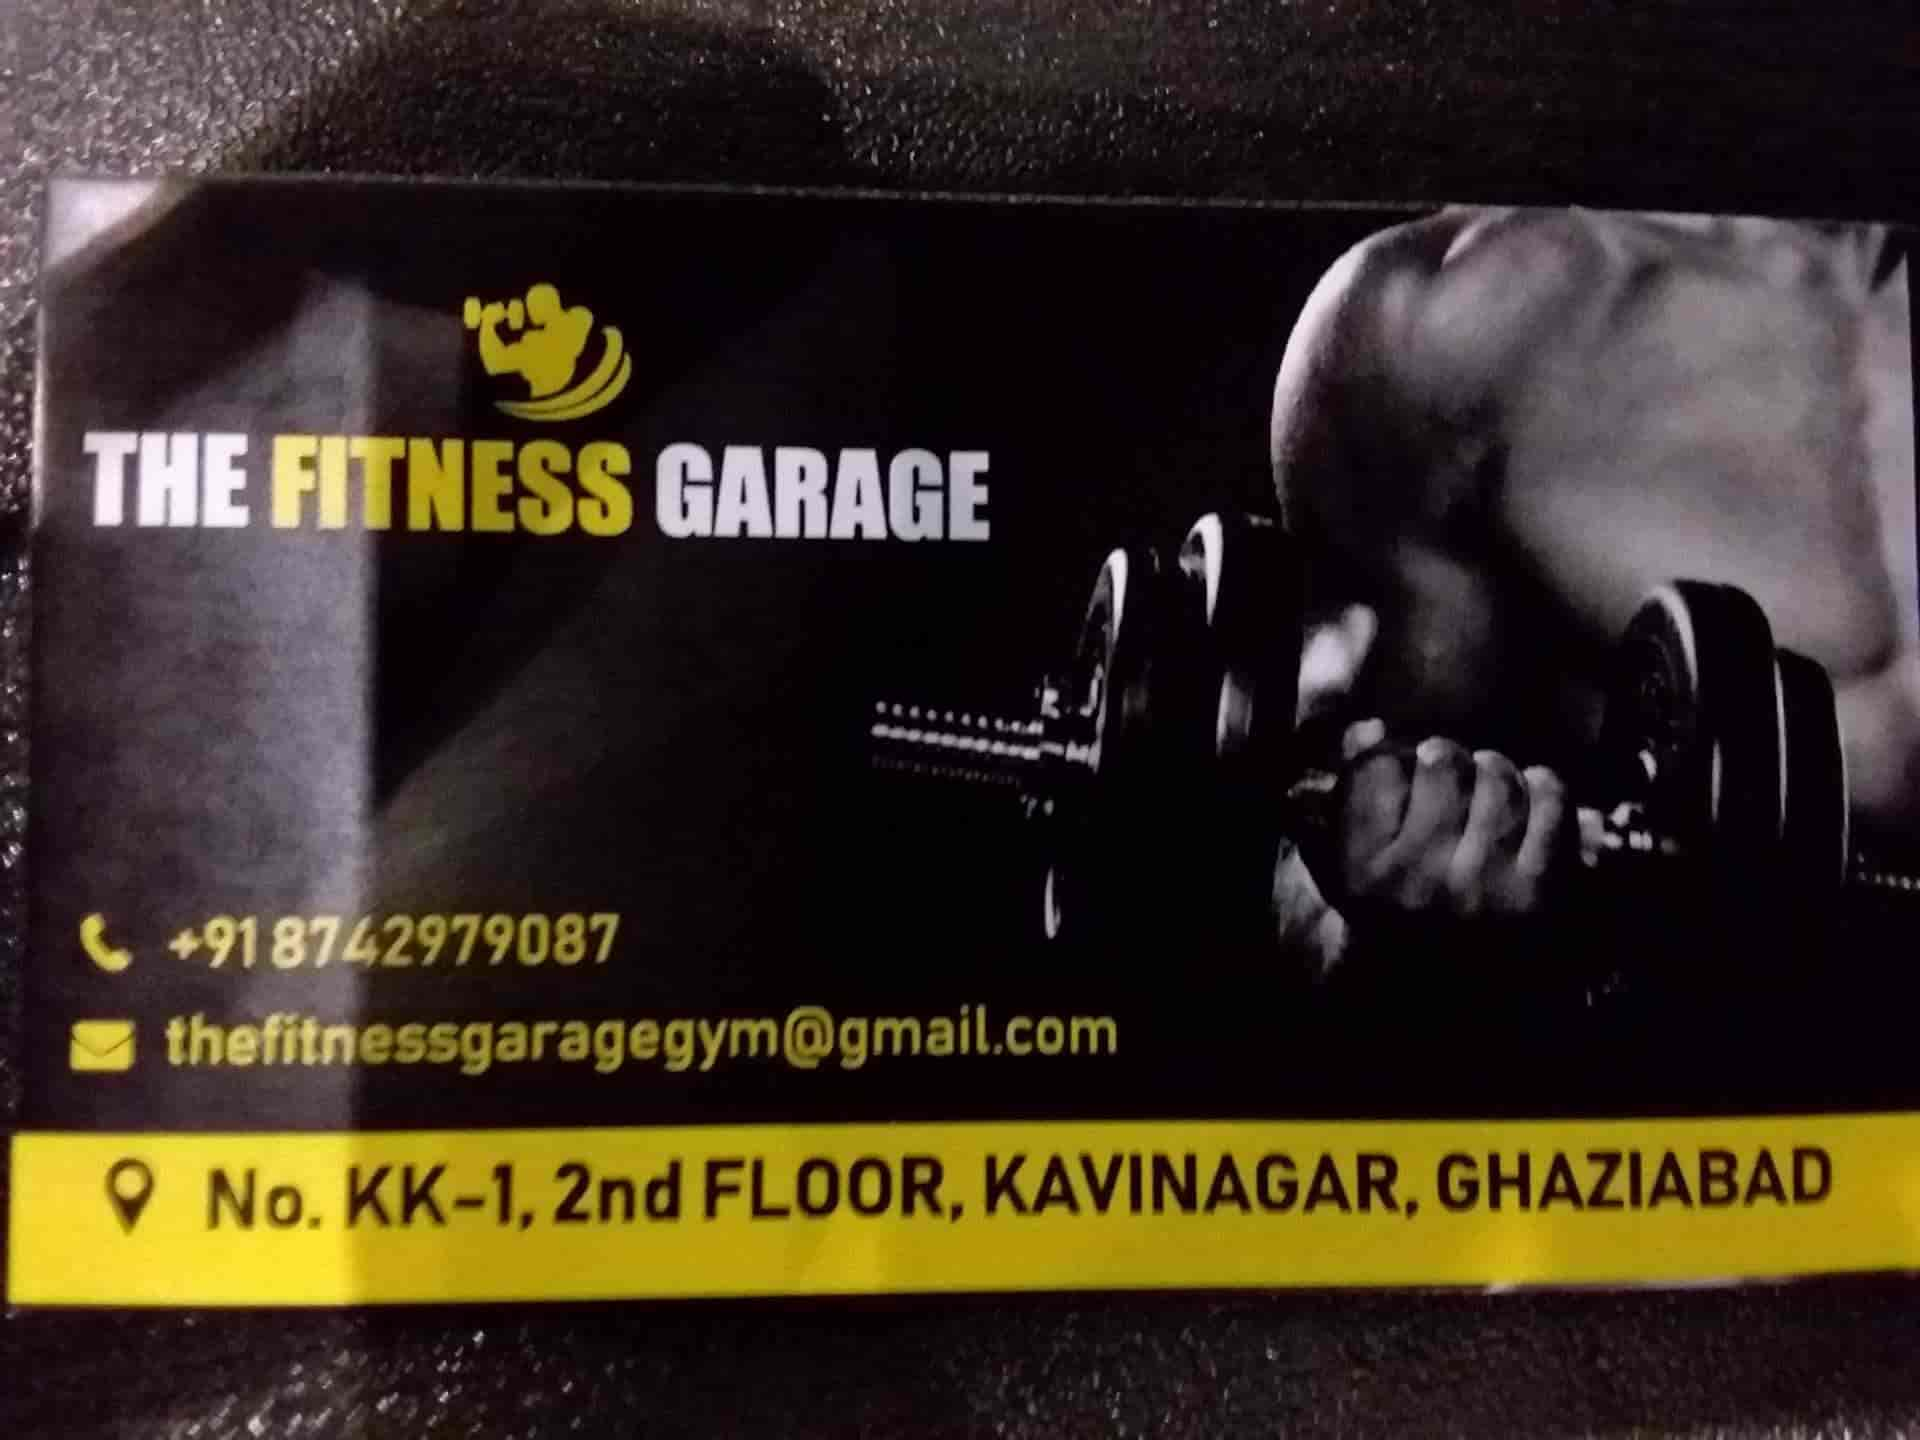 The fitness garage kavi nagar gyms in delhi justdial